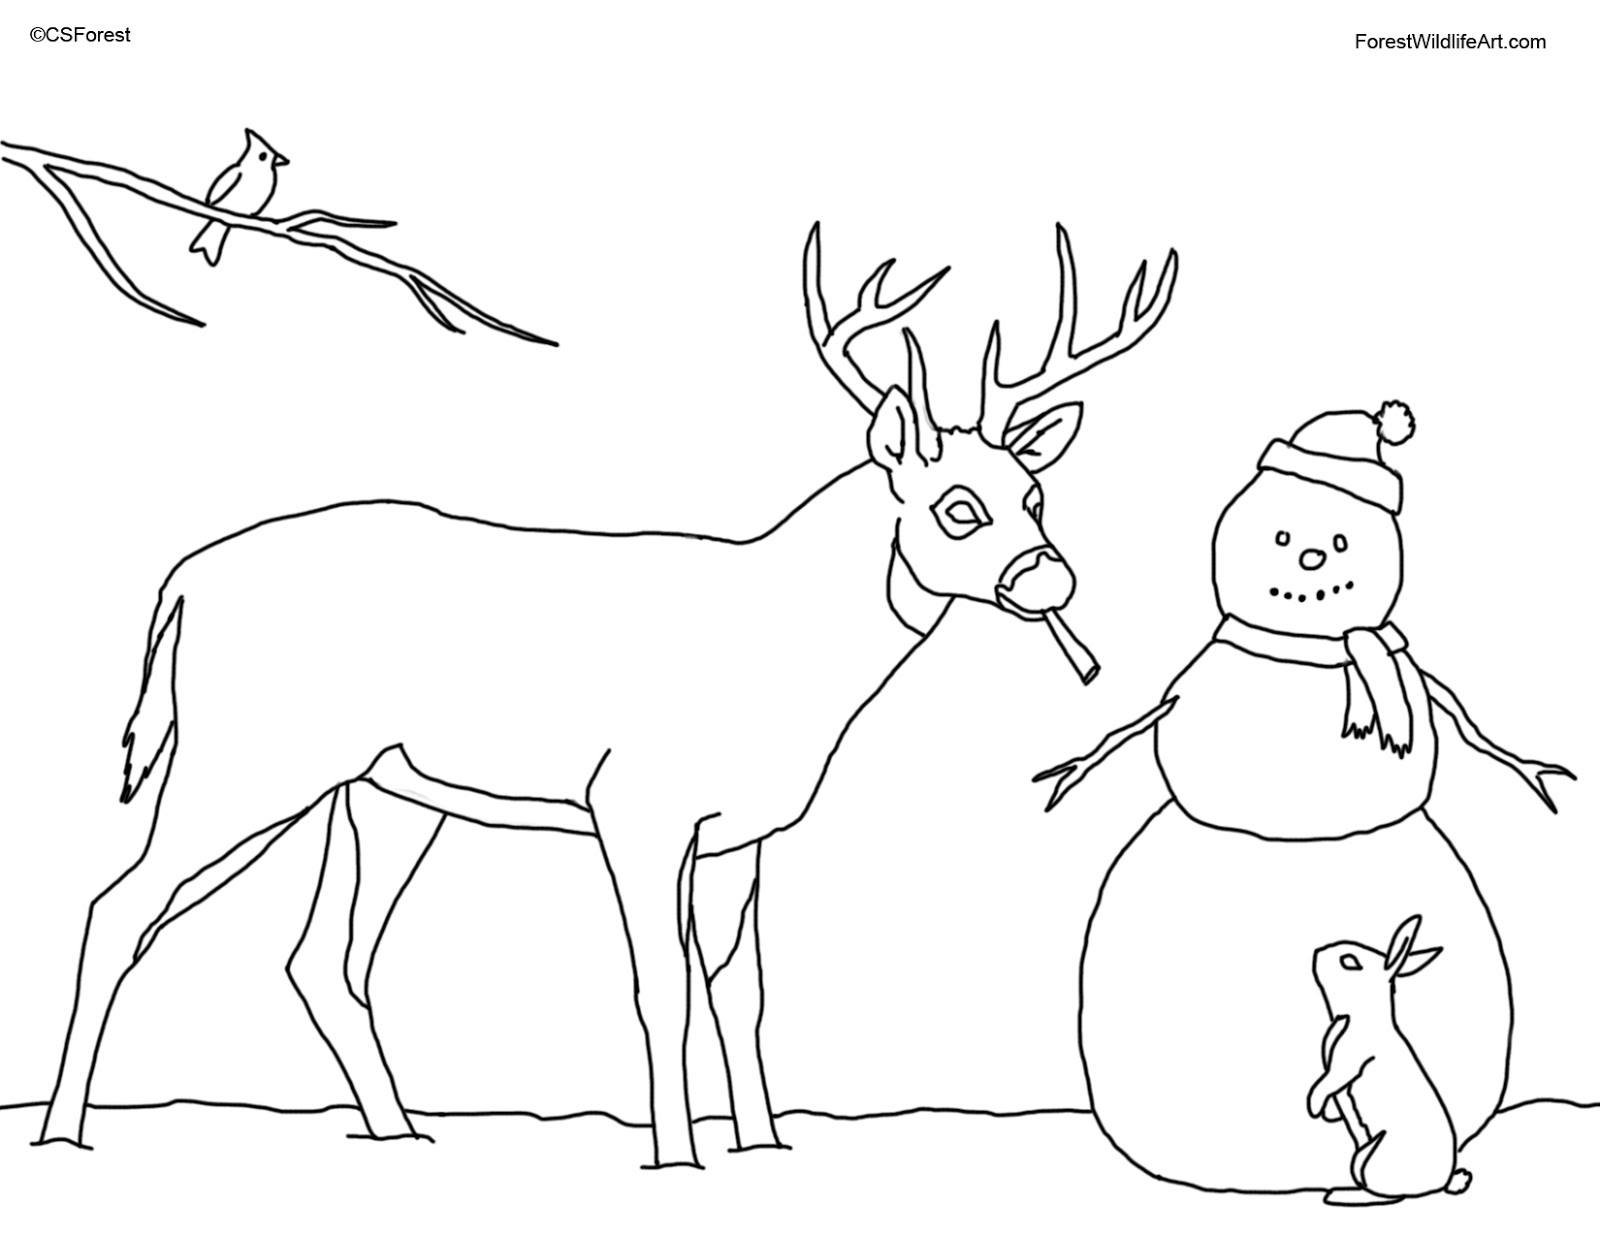 crista forests animals art coloring book page for kids christmas deer and snowman